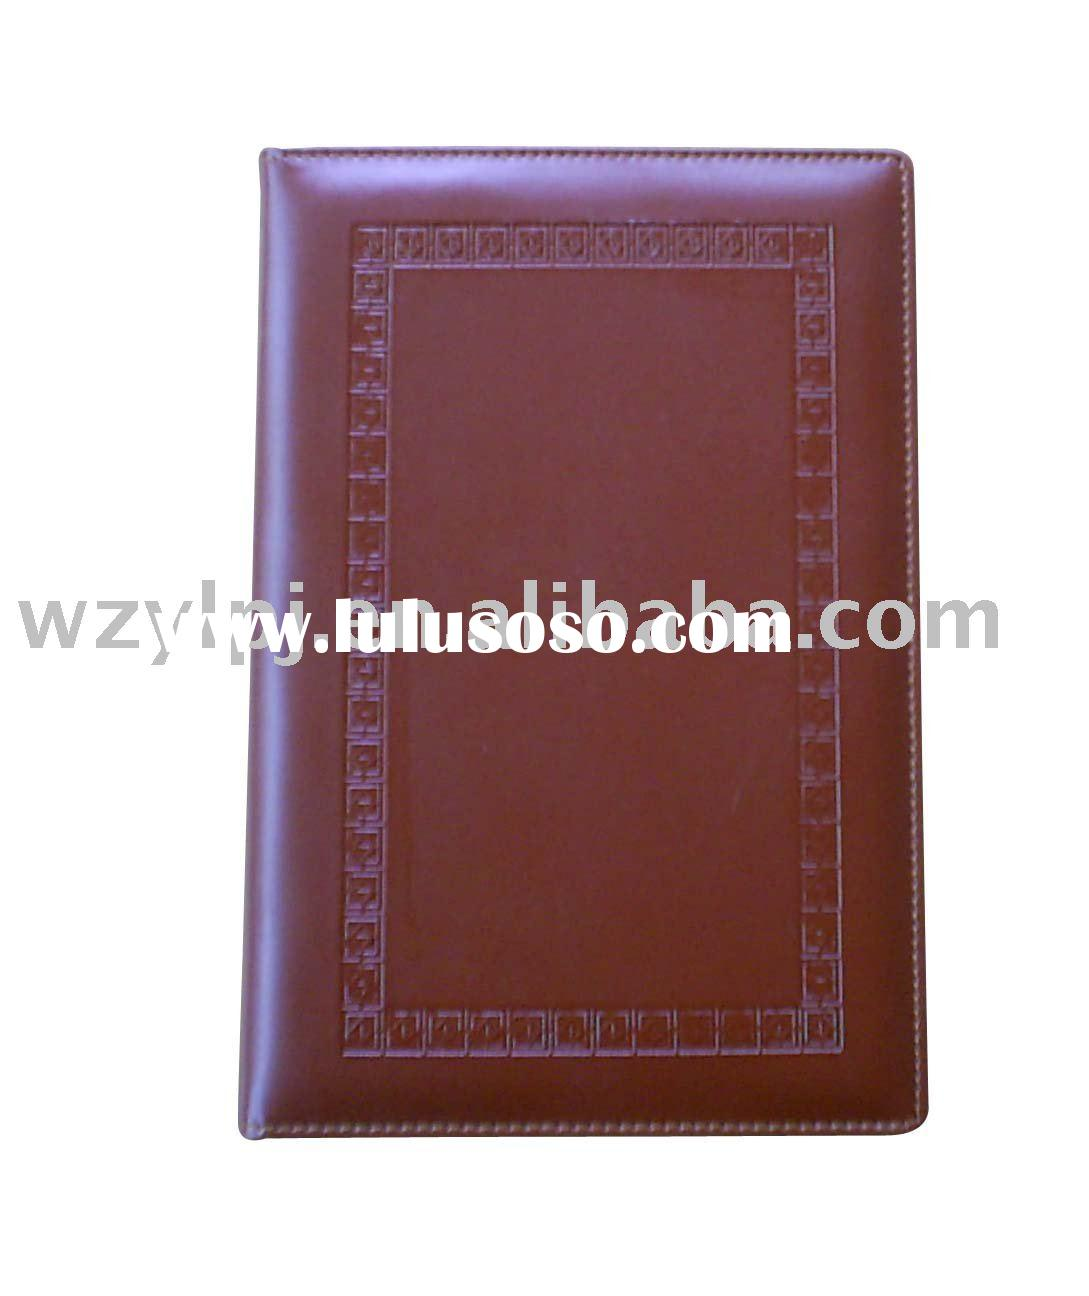 Elegant A5 pu leather diary notebook